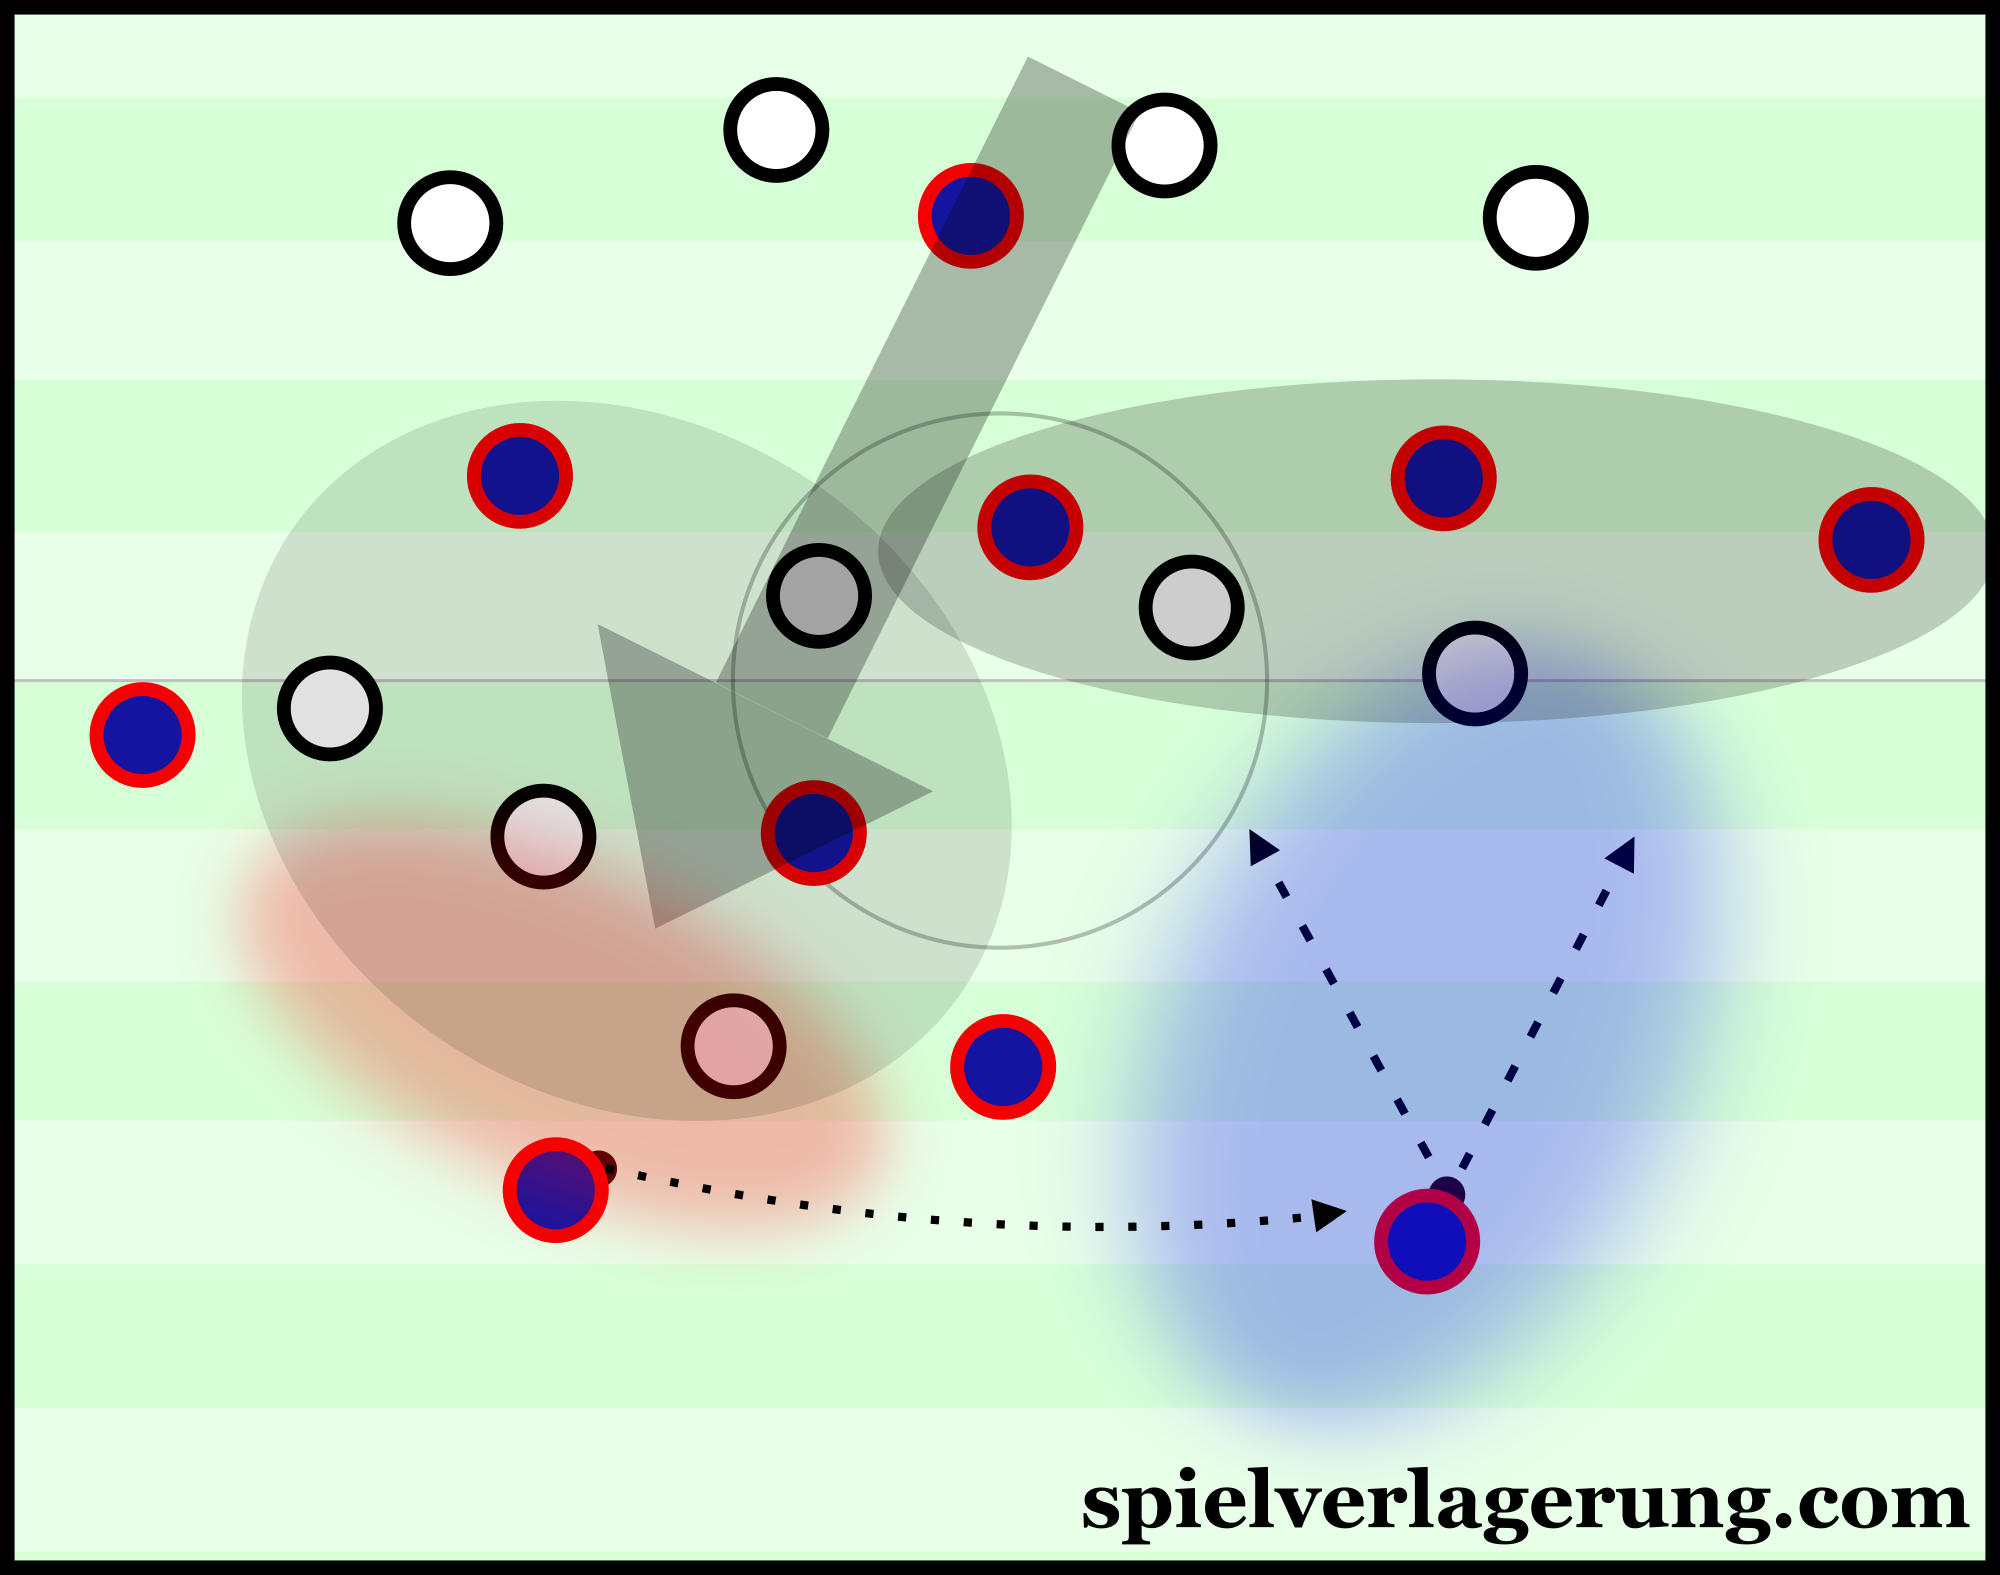 PSG can build-up in one half-space to then switch to the opposite and exploit the opened space.